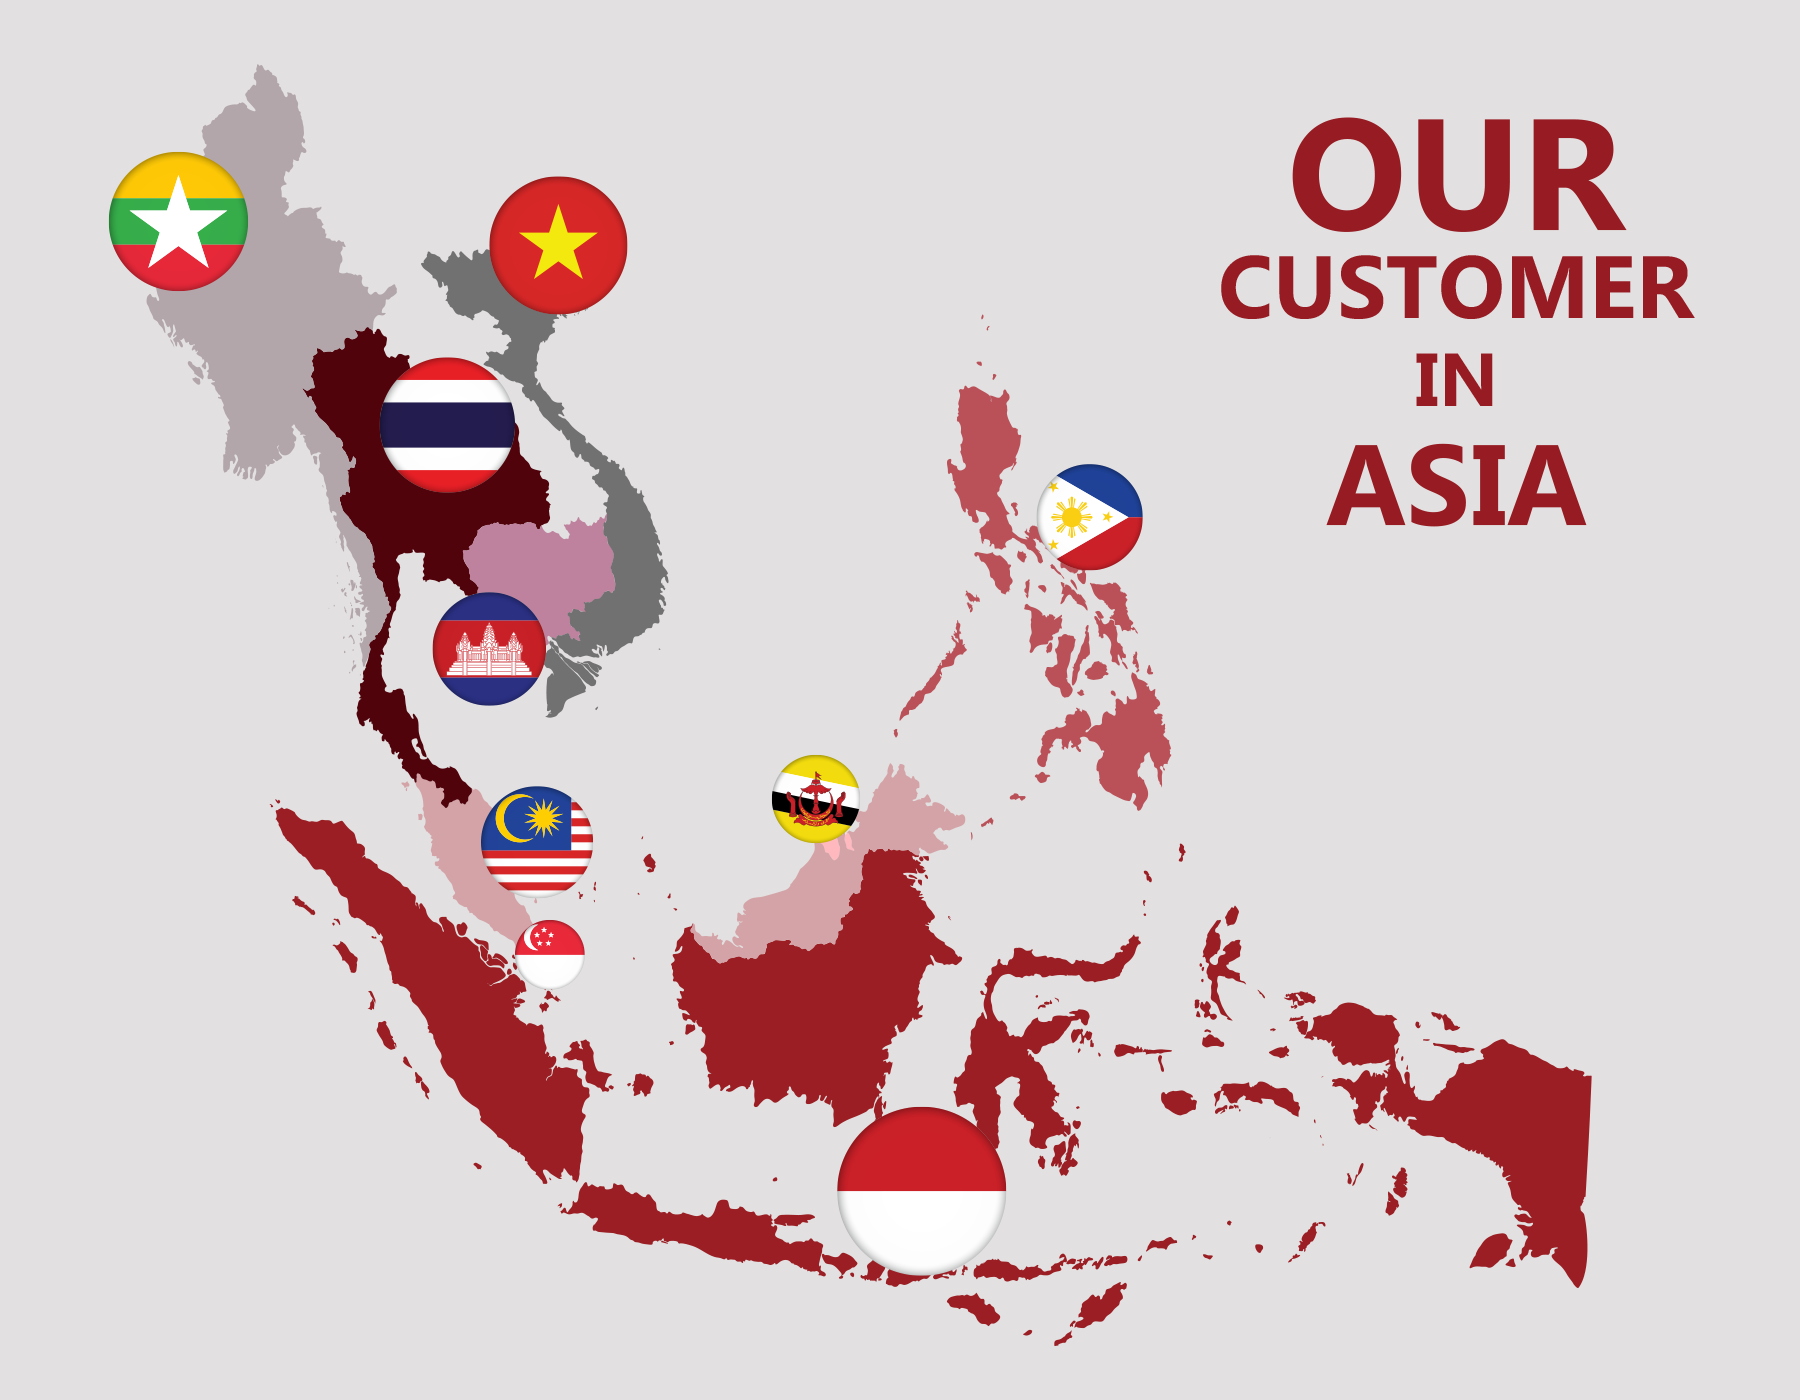 Our Customer in ASIA